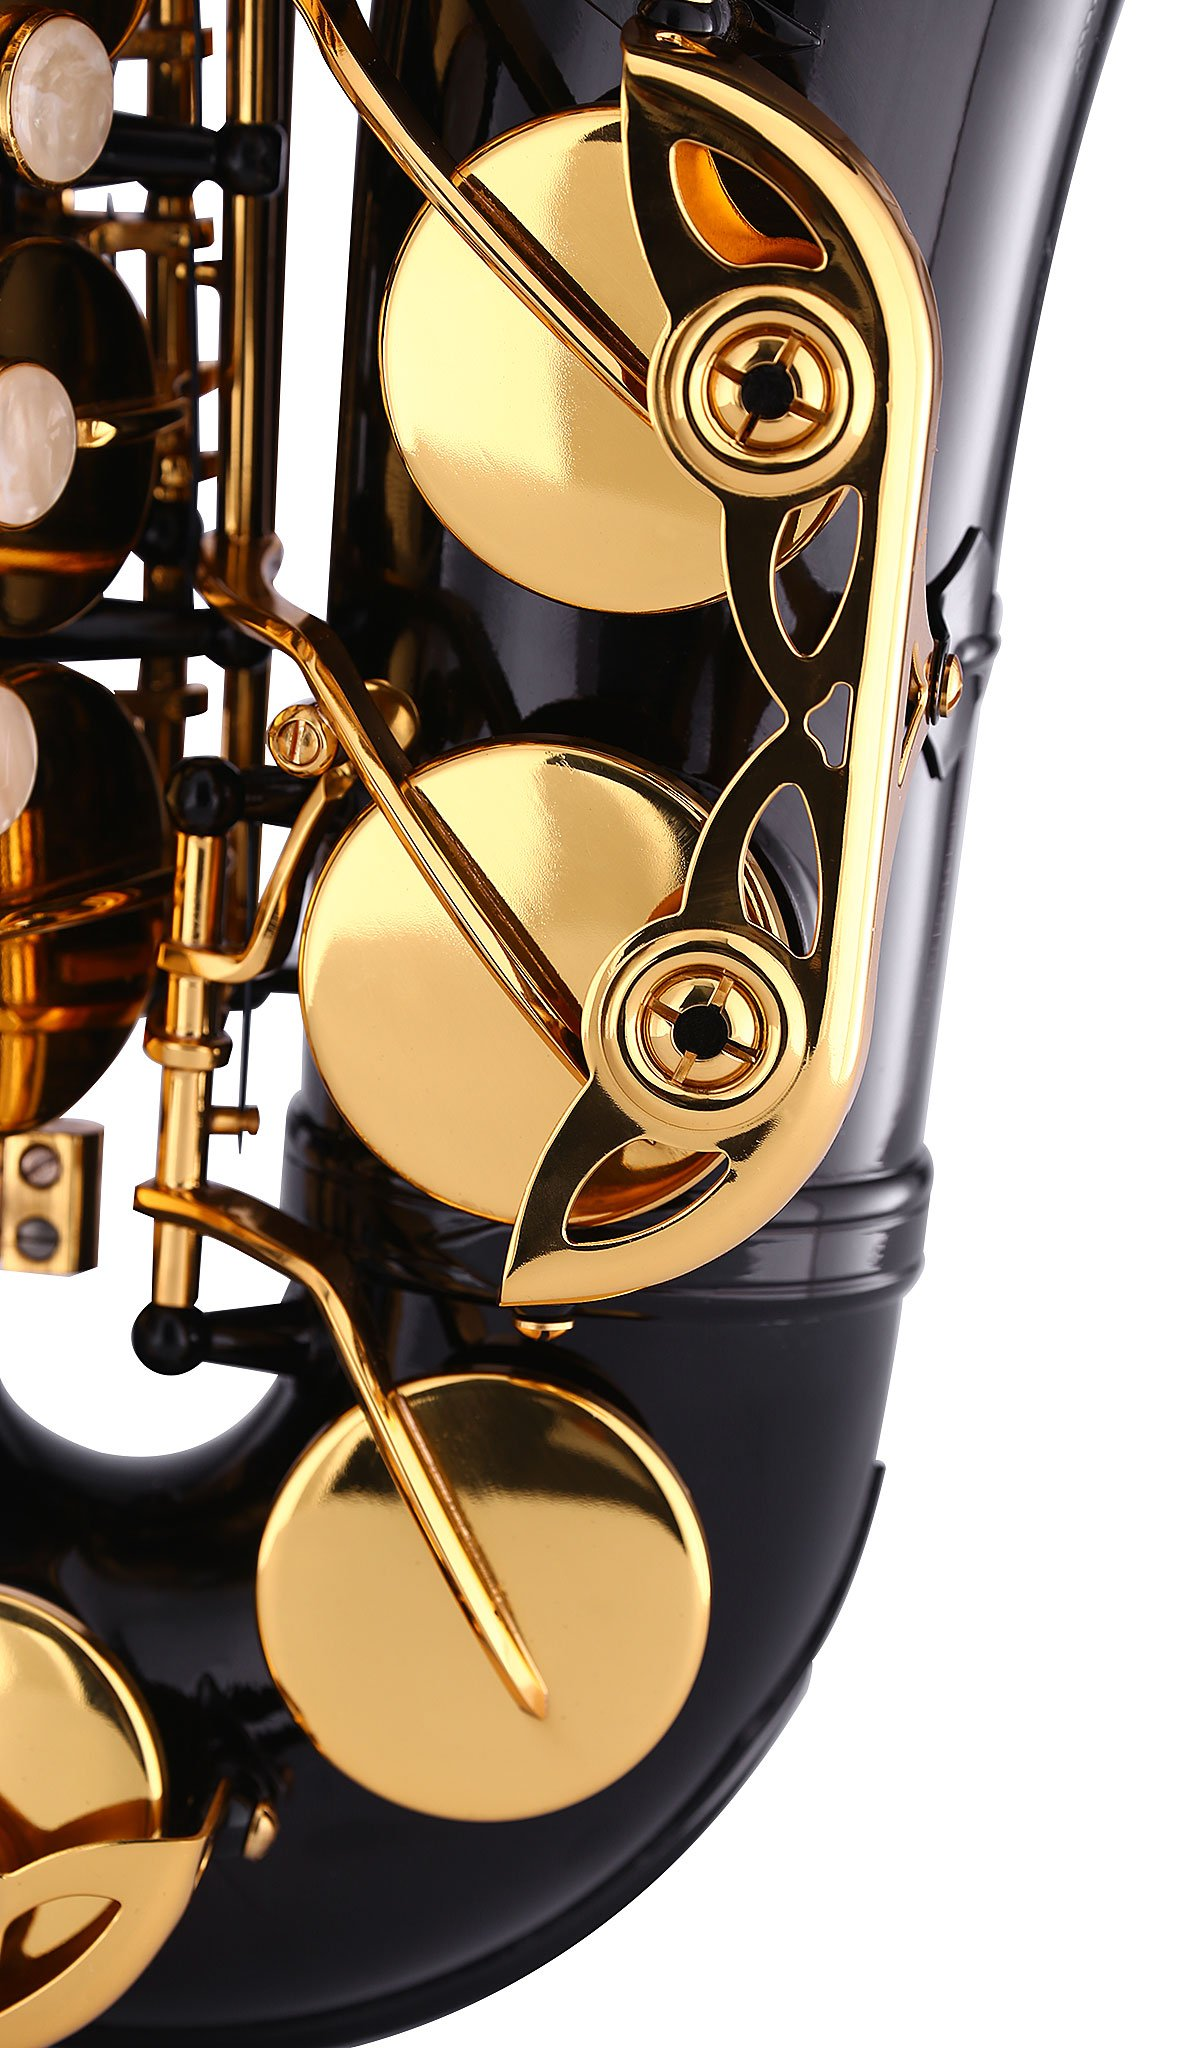 Kaizer Alto Saxophone E Flat Eb Black Lacquer Body Gold Keys 1000 Series Sax Includes Case Mouthpiece and Accessories ASAX-1000BKGK by Kaizer (Image #4)